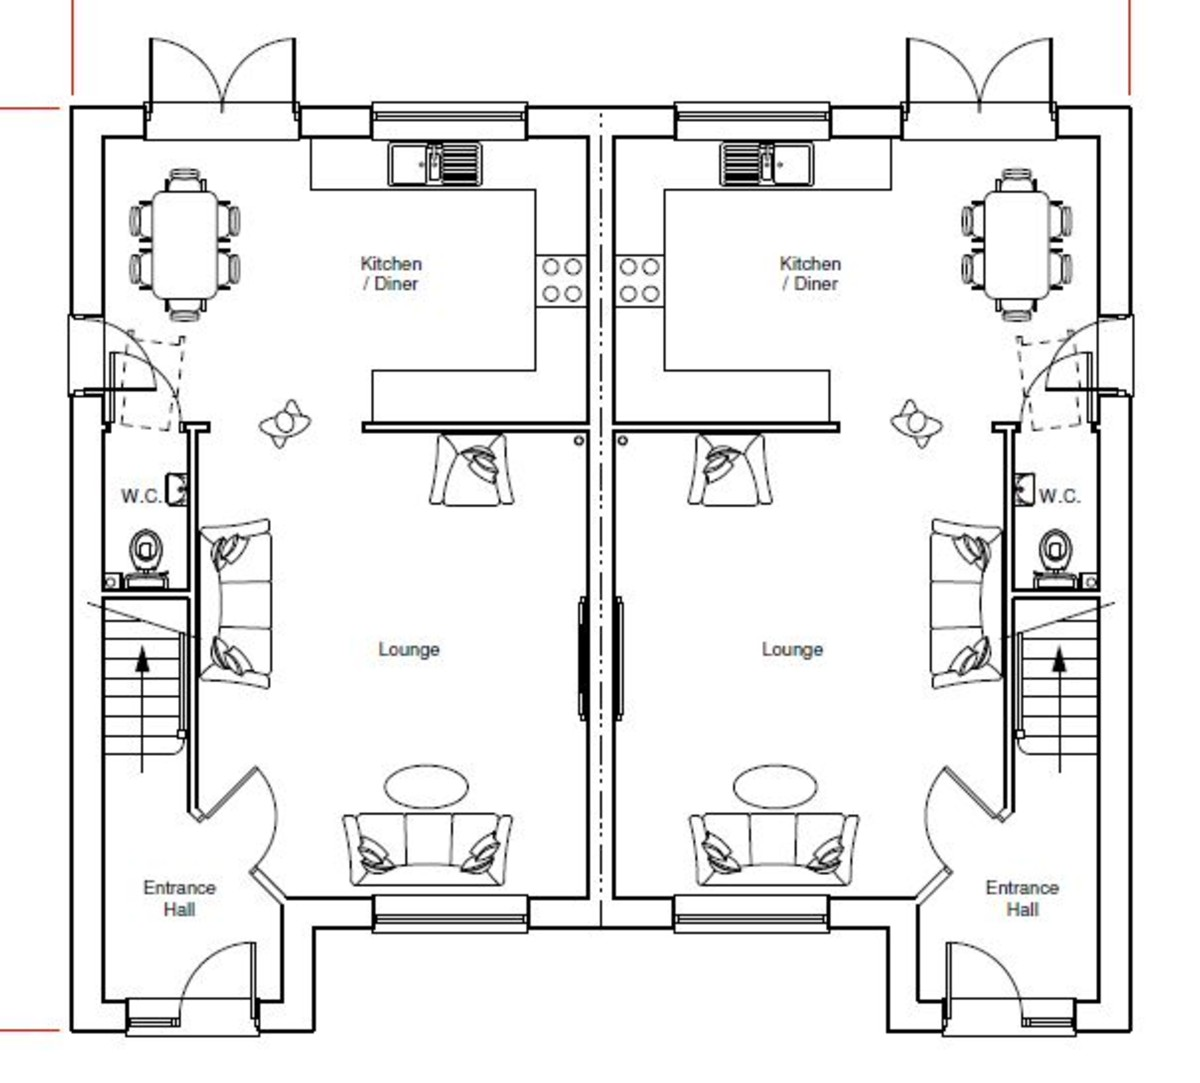 Norton, Bury St Edmunds, Suffolk Floorplan